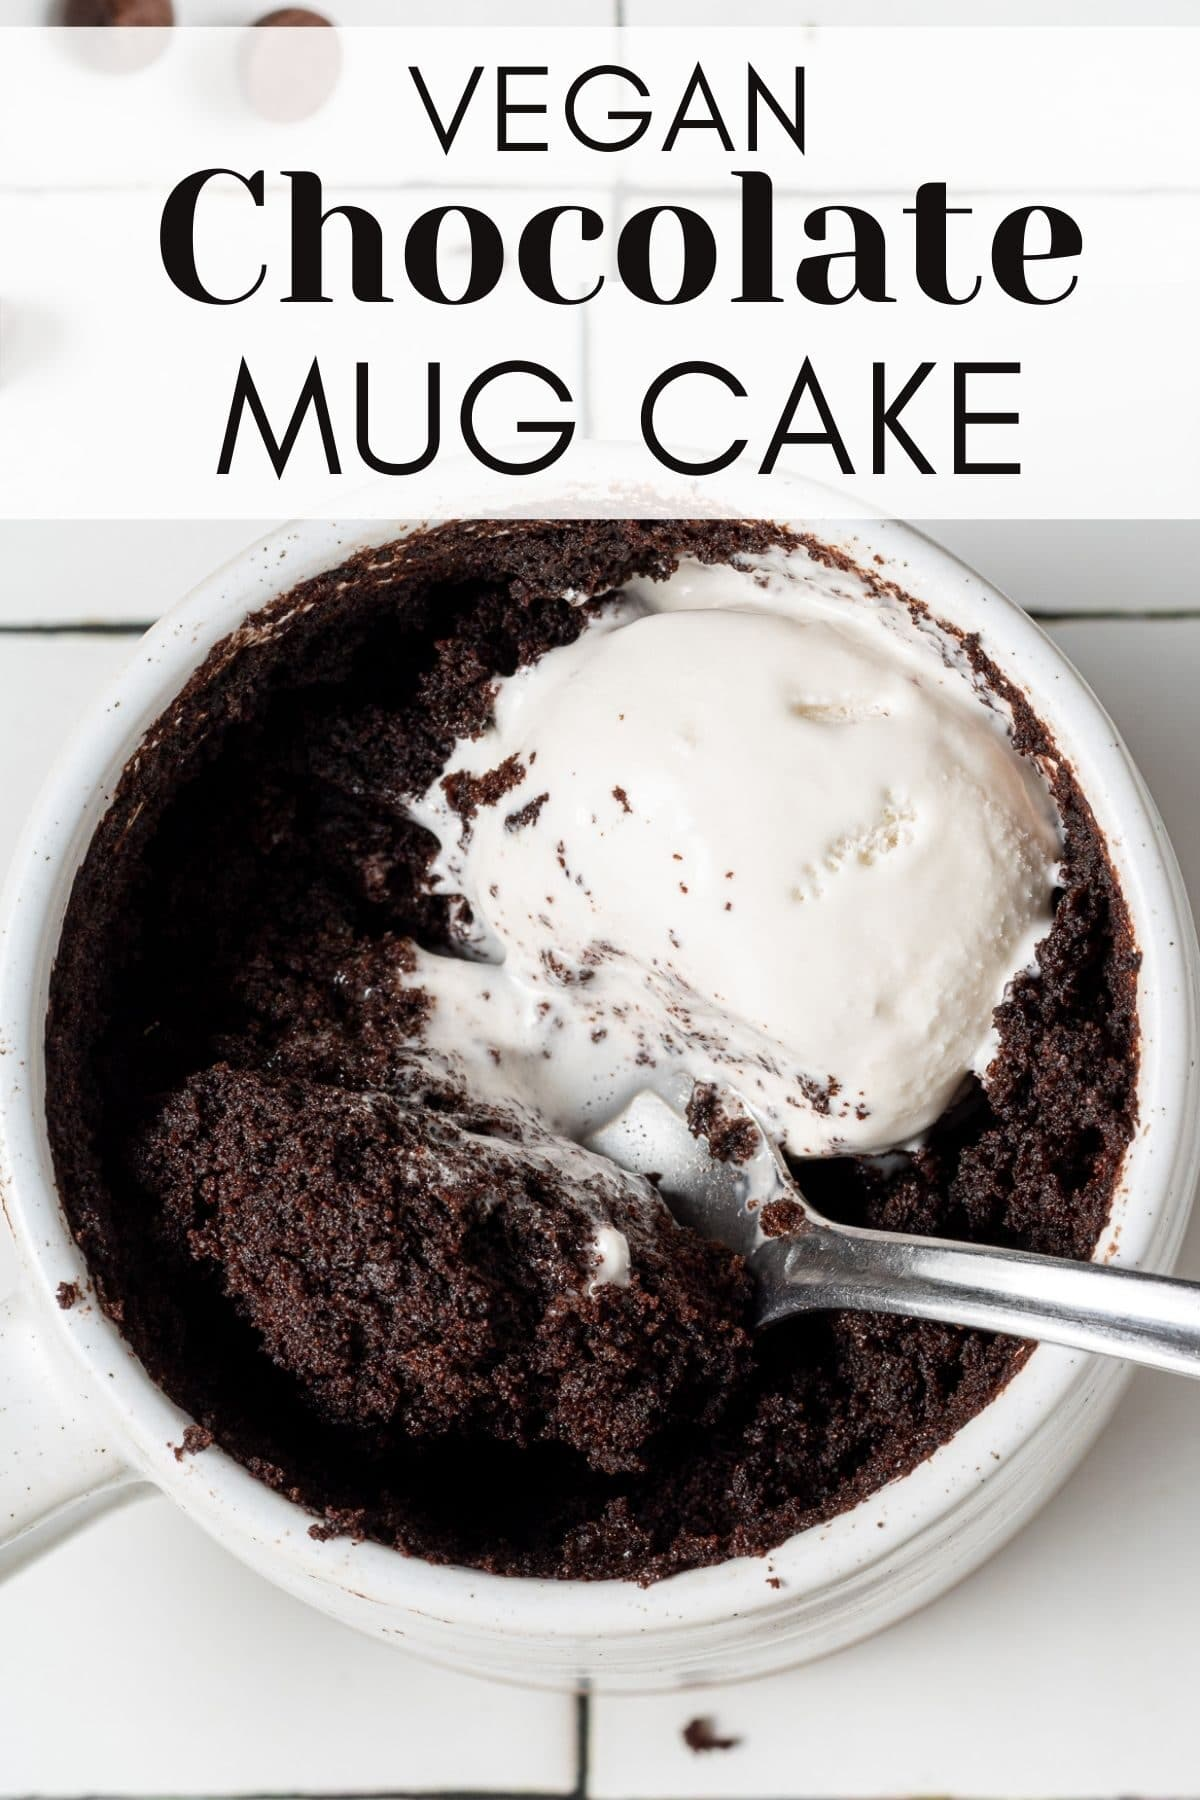 chocolate cake in a mug with vegan whipped cream on top and a spoon with text overlay